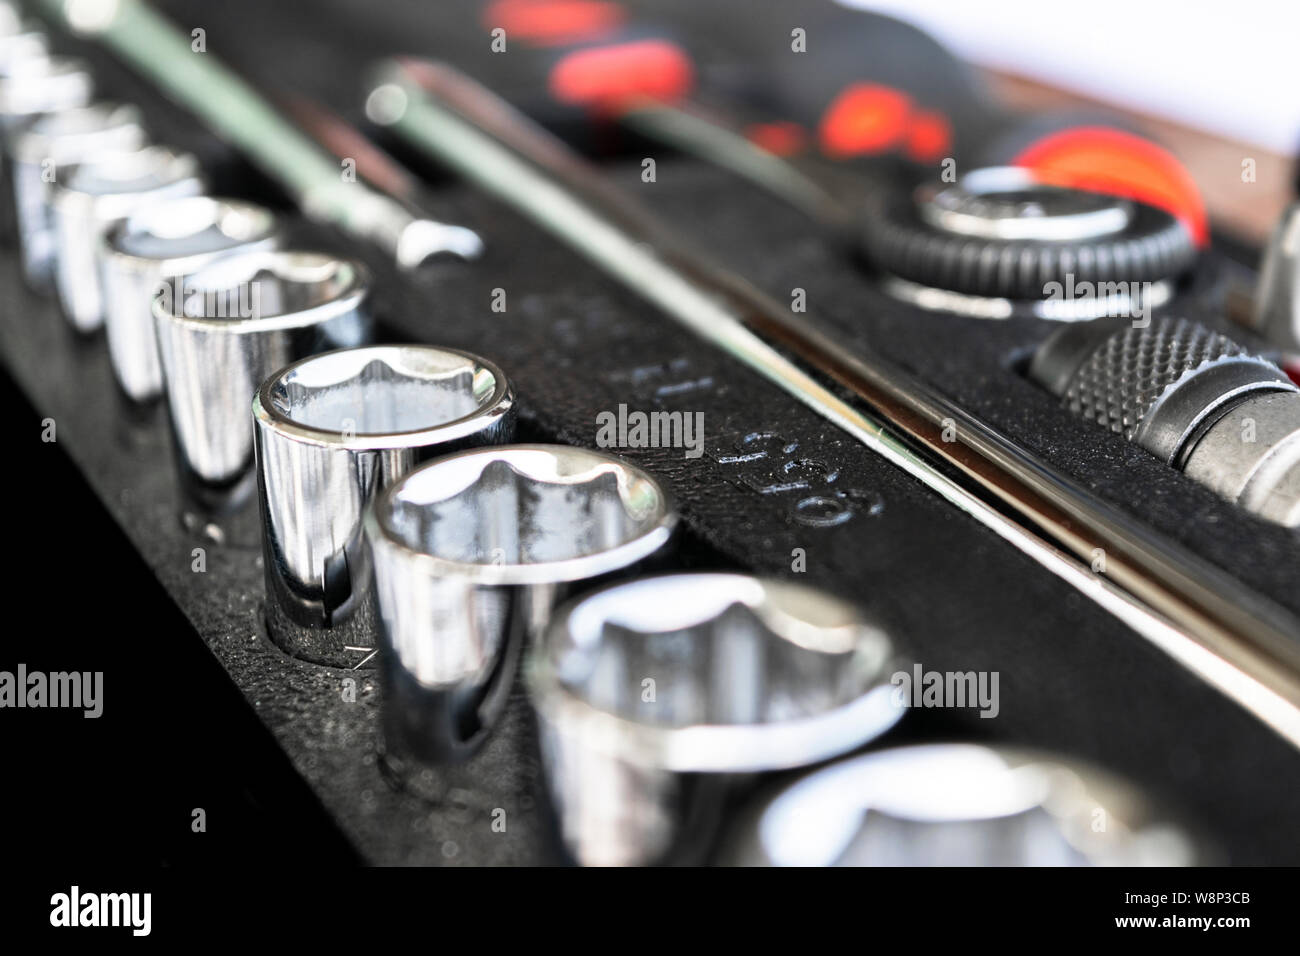 Close up viw of a Garage Tool Box. Set of Tools. Tool Box for Construction. Tool to repair the car or replace automotive spare parts. Stock Photo